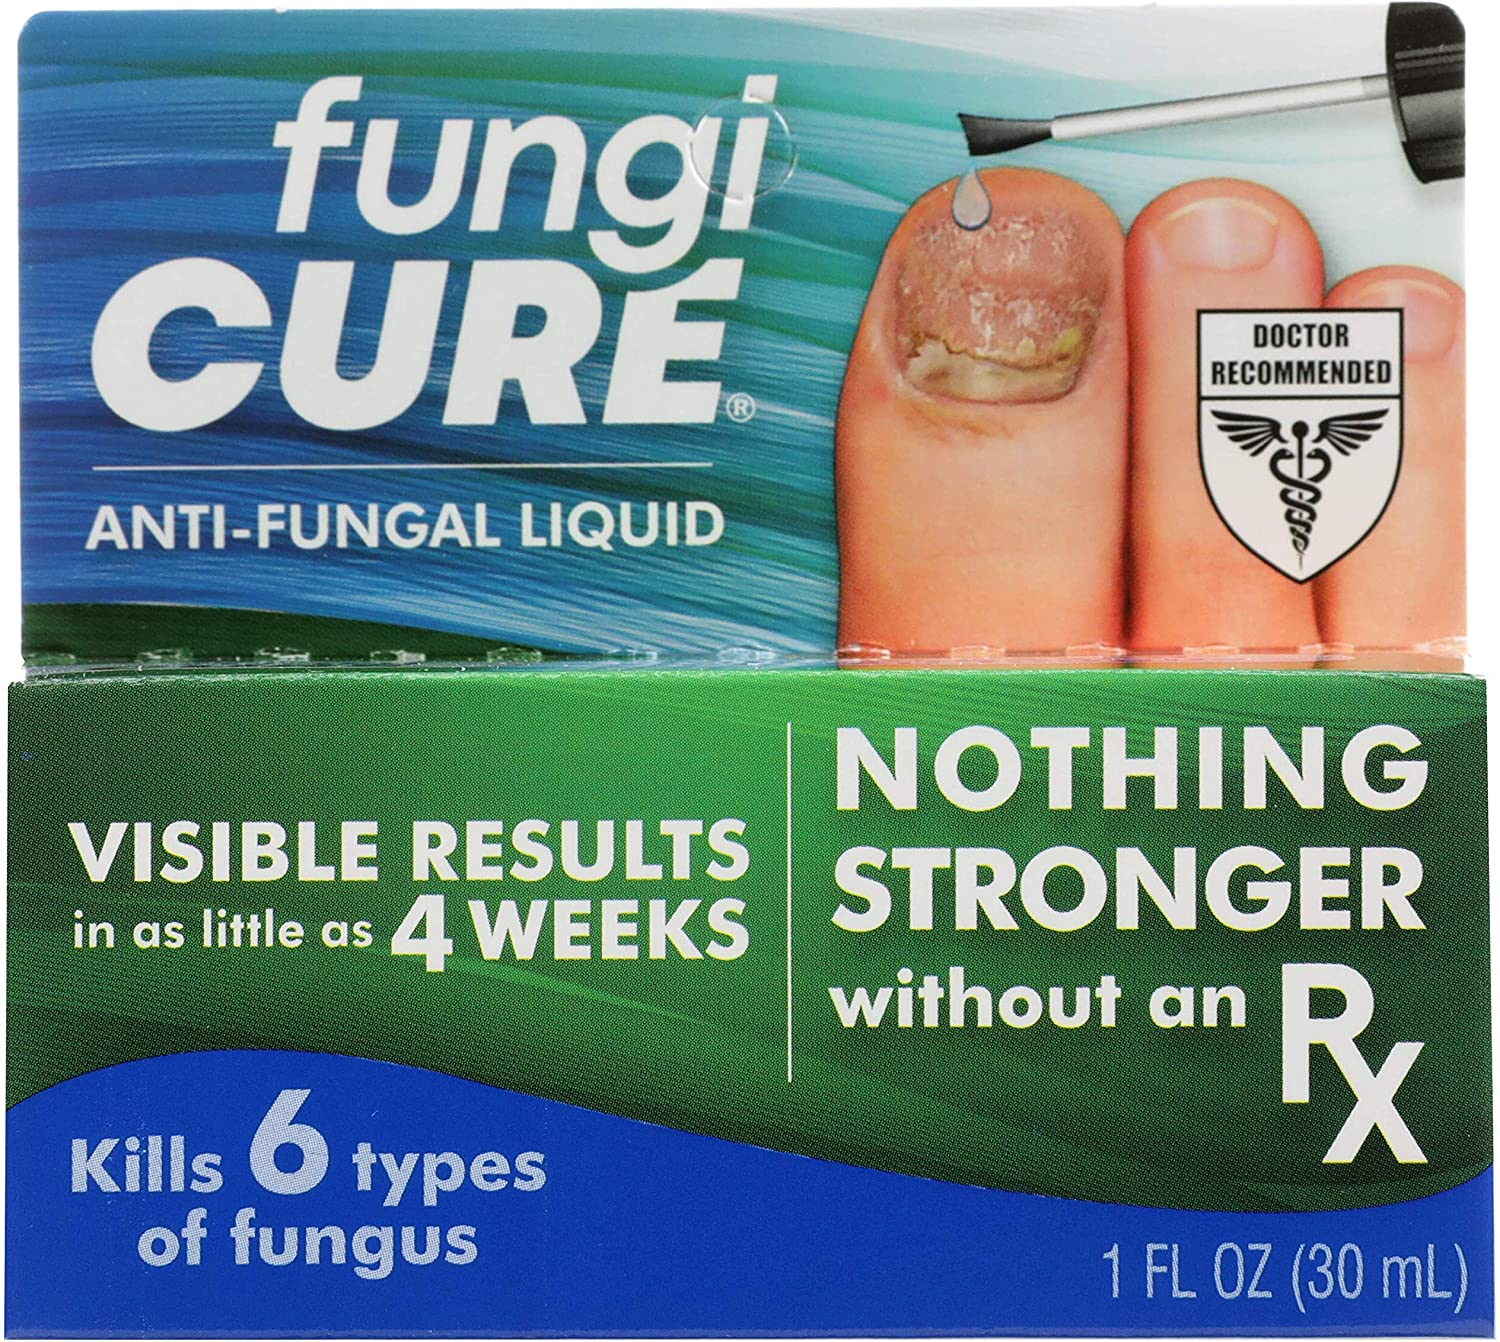 FUNGICURE Anti-Fungal Liquid - Maximum Strength - Kills Exposed Nail-Bed Fungus - Visible Results in as Little as 4 Weeks - 1 fl oz: Health & Personal Care